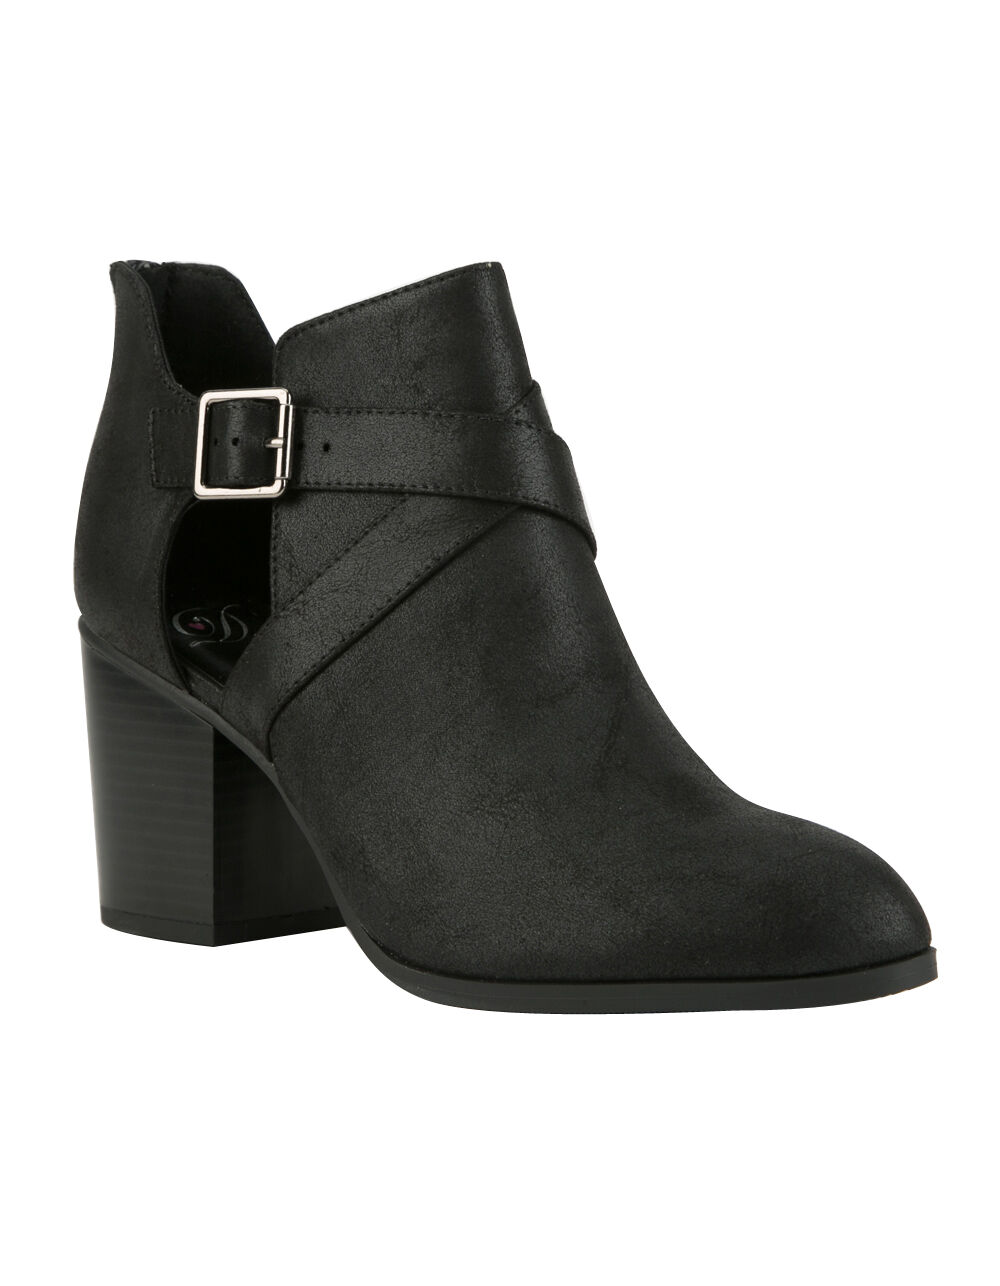 Image of DELICIOUS CUTOUT BOOTIES